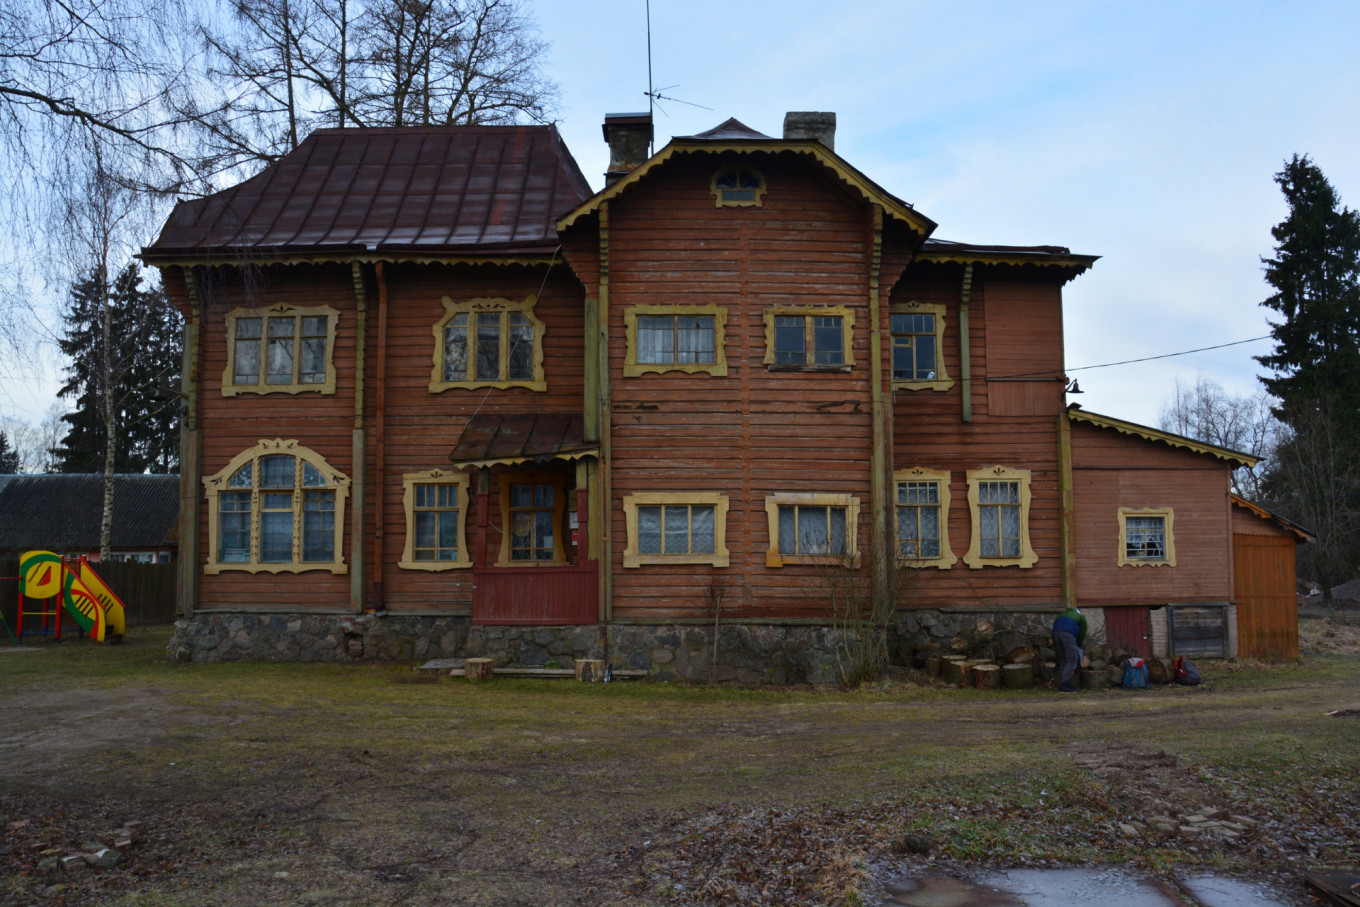 The house in Pribytkovo is a masterpiece of wooden style moderne. Tom Sawyer Fest